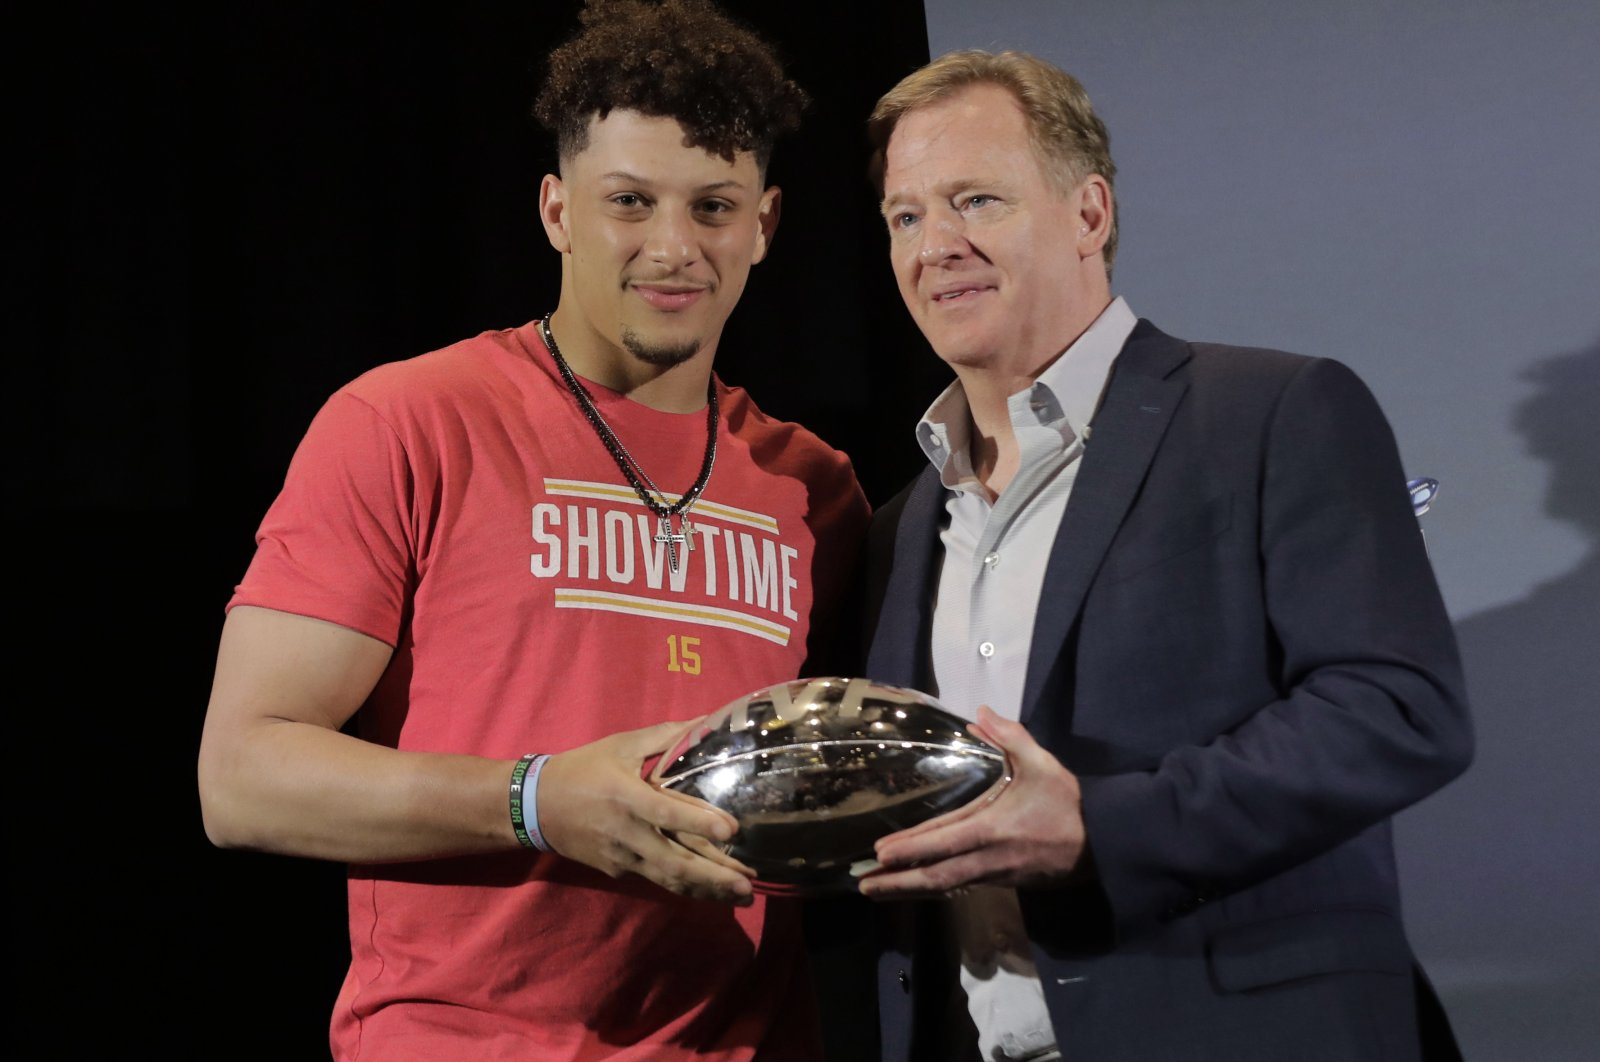 Patrick Mahomes (L) holds the MVP trophy with NFL Commissioner Roger Goodell before a news conference in Miami, Florida, U.S., Feb. 3, 2020. (AP Photo)